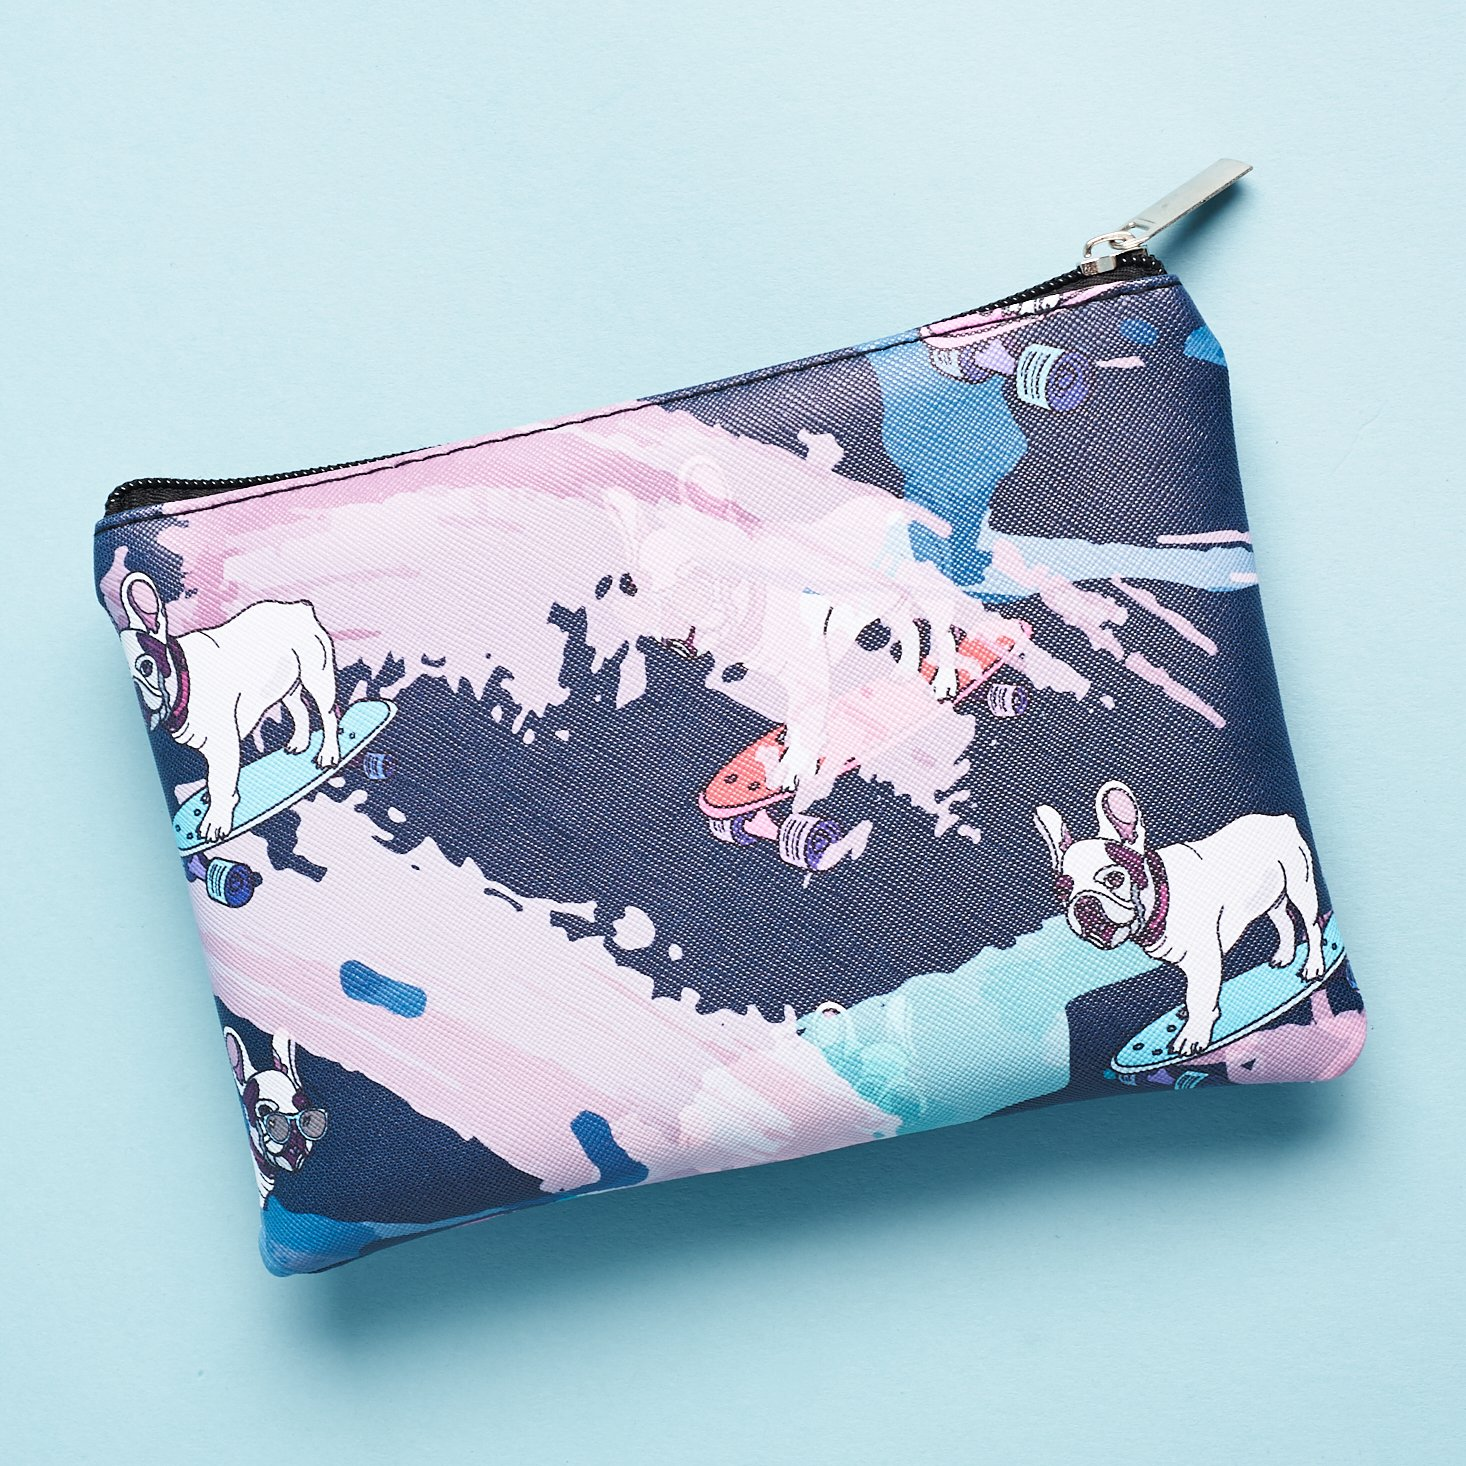 back of pouch with all over pattern